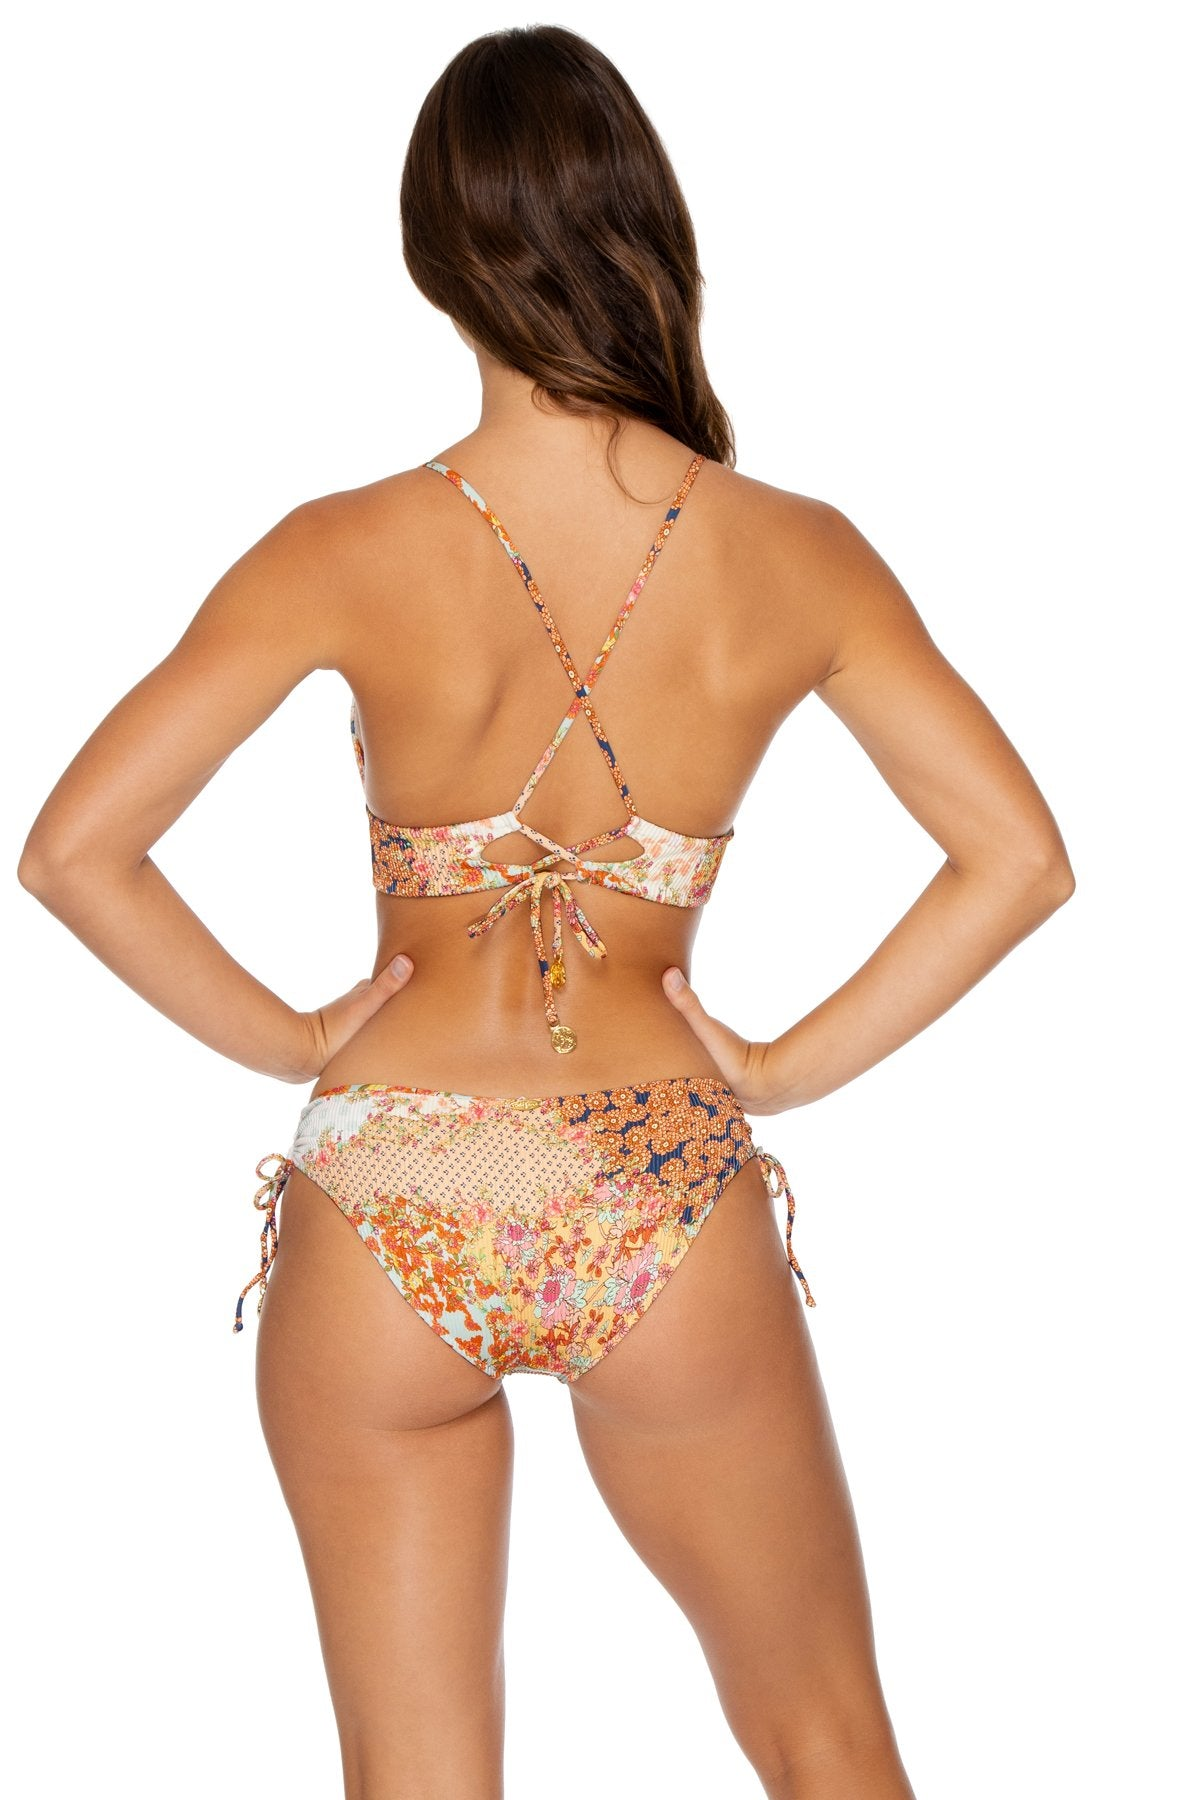 SALTY BUT SWEET - Cross Back Bustier Top & Drawstring Side Full Bottom • Multicolor